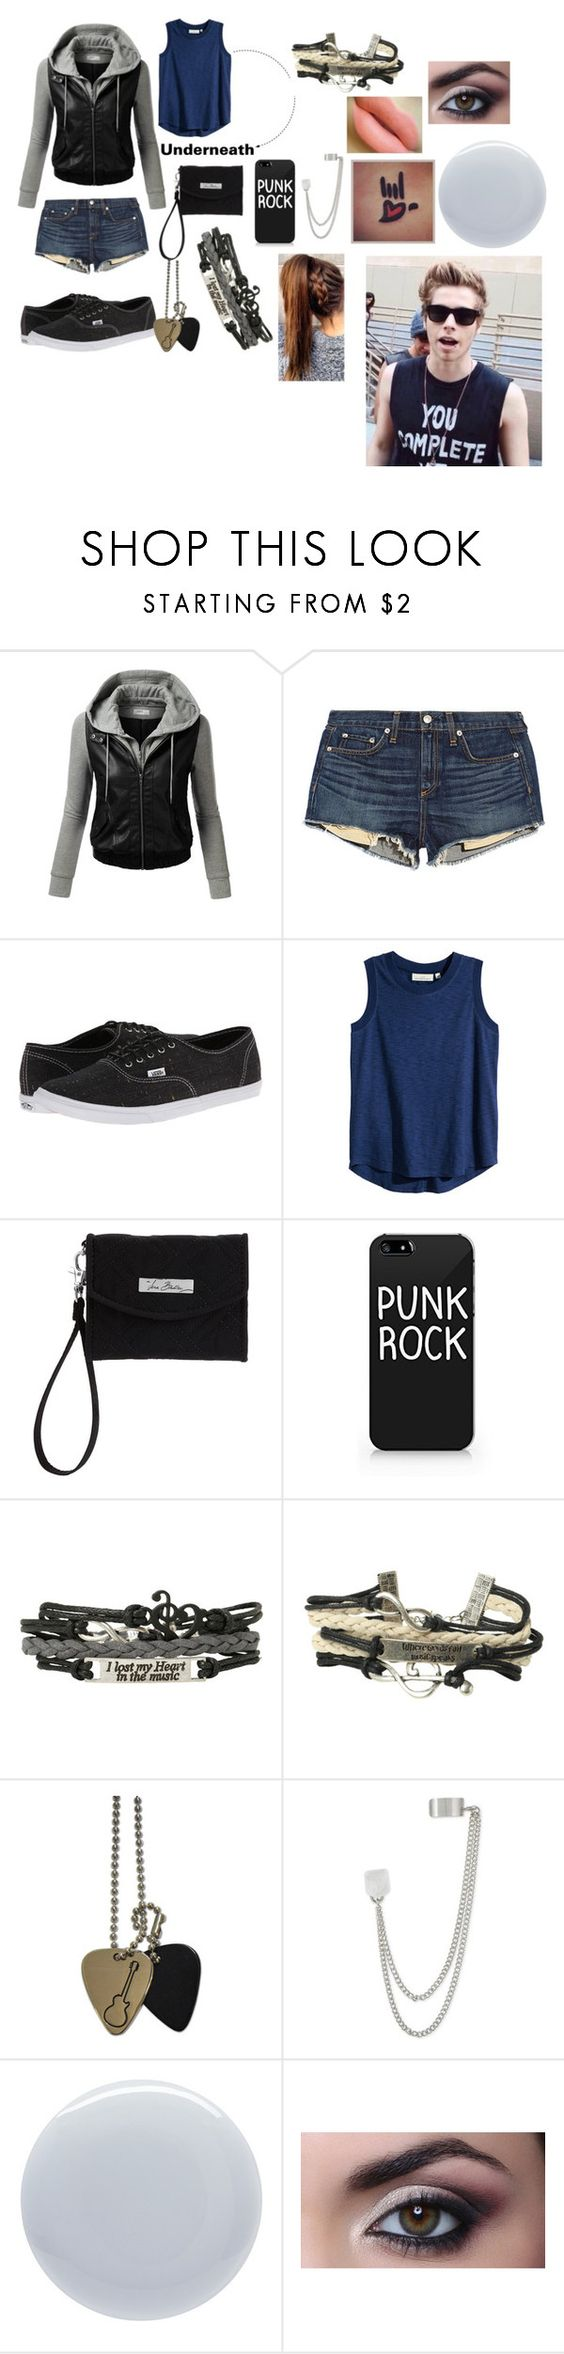 """[Request]Casual Date With Luke"" by sammierock ❤ liked on Polyvore featuring J.TOMSON, rag & bone/JEAN, Vans, H&M, Vera Bradley, French Connection, Deborah Lippmann and MAC Cosmetics"